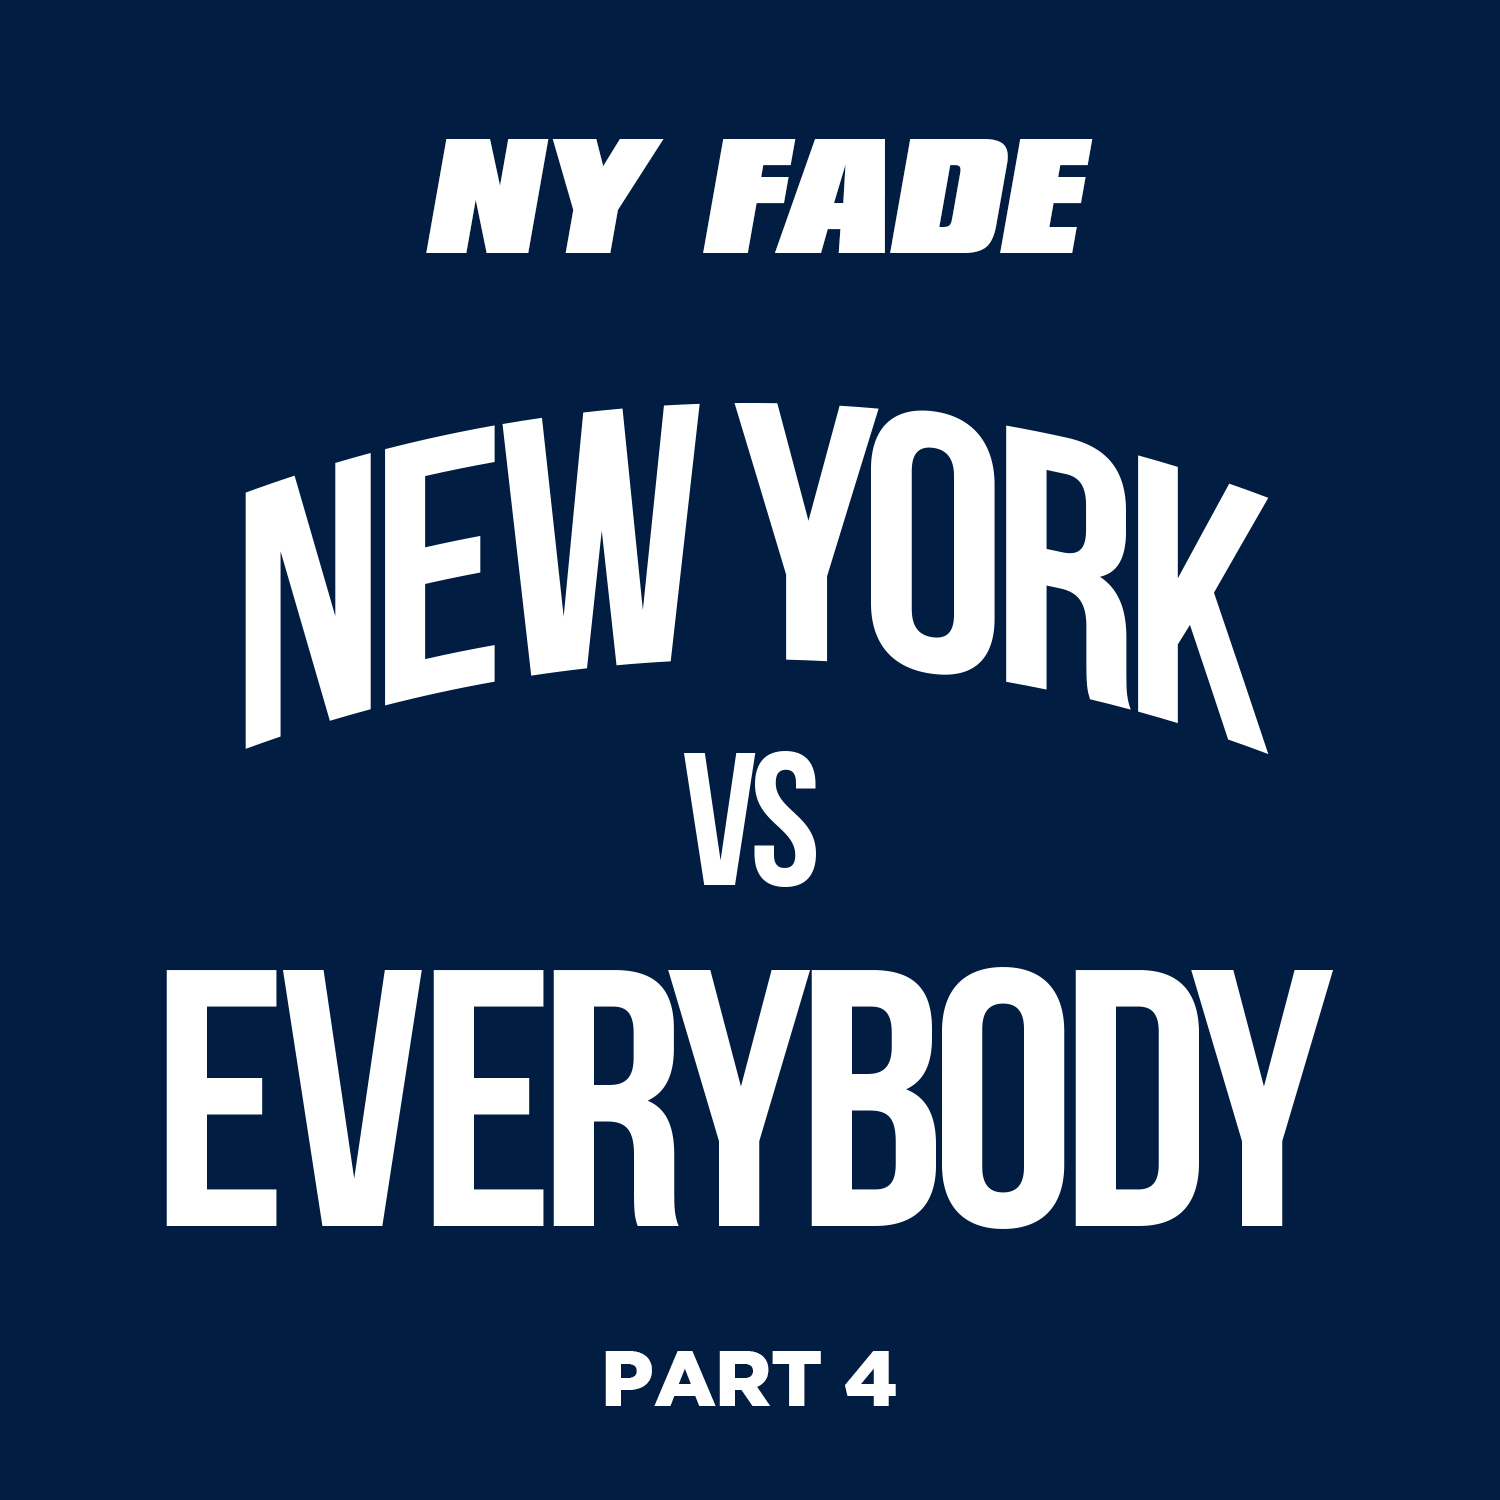 New York Vs Everybody [Part 4A] - Web Front